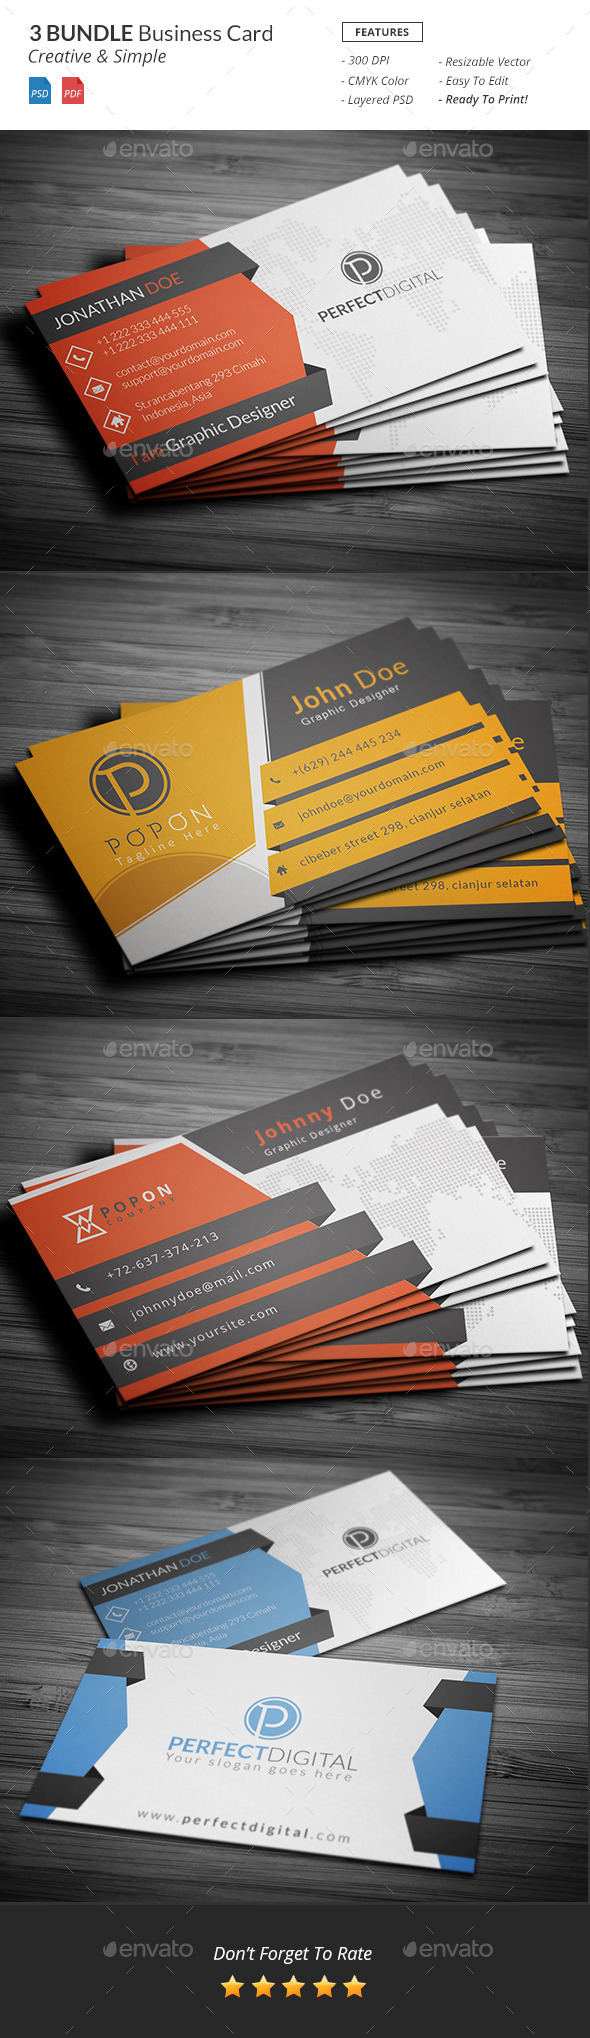 GraphicRiver Bundle Business Card Template 11414703